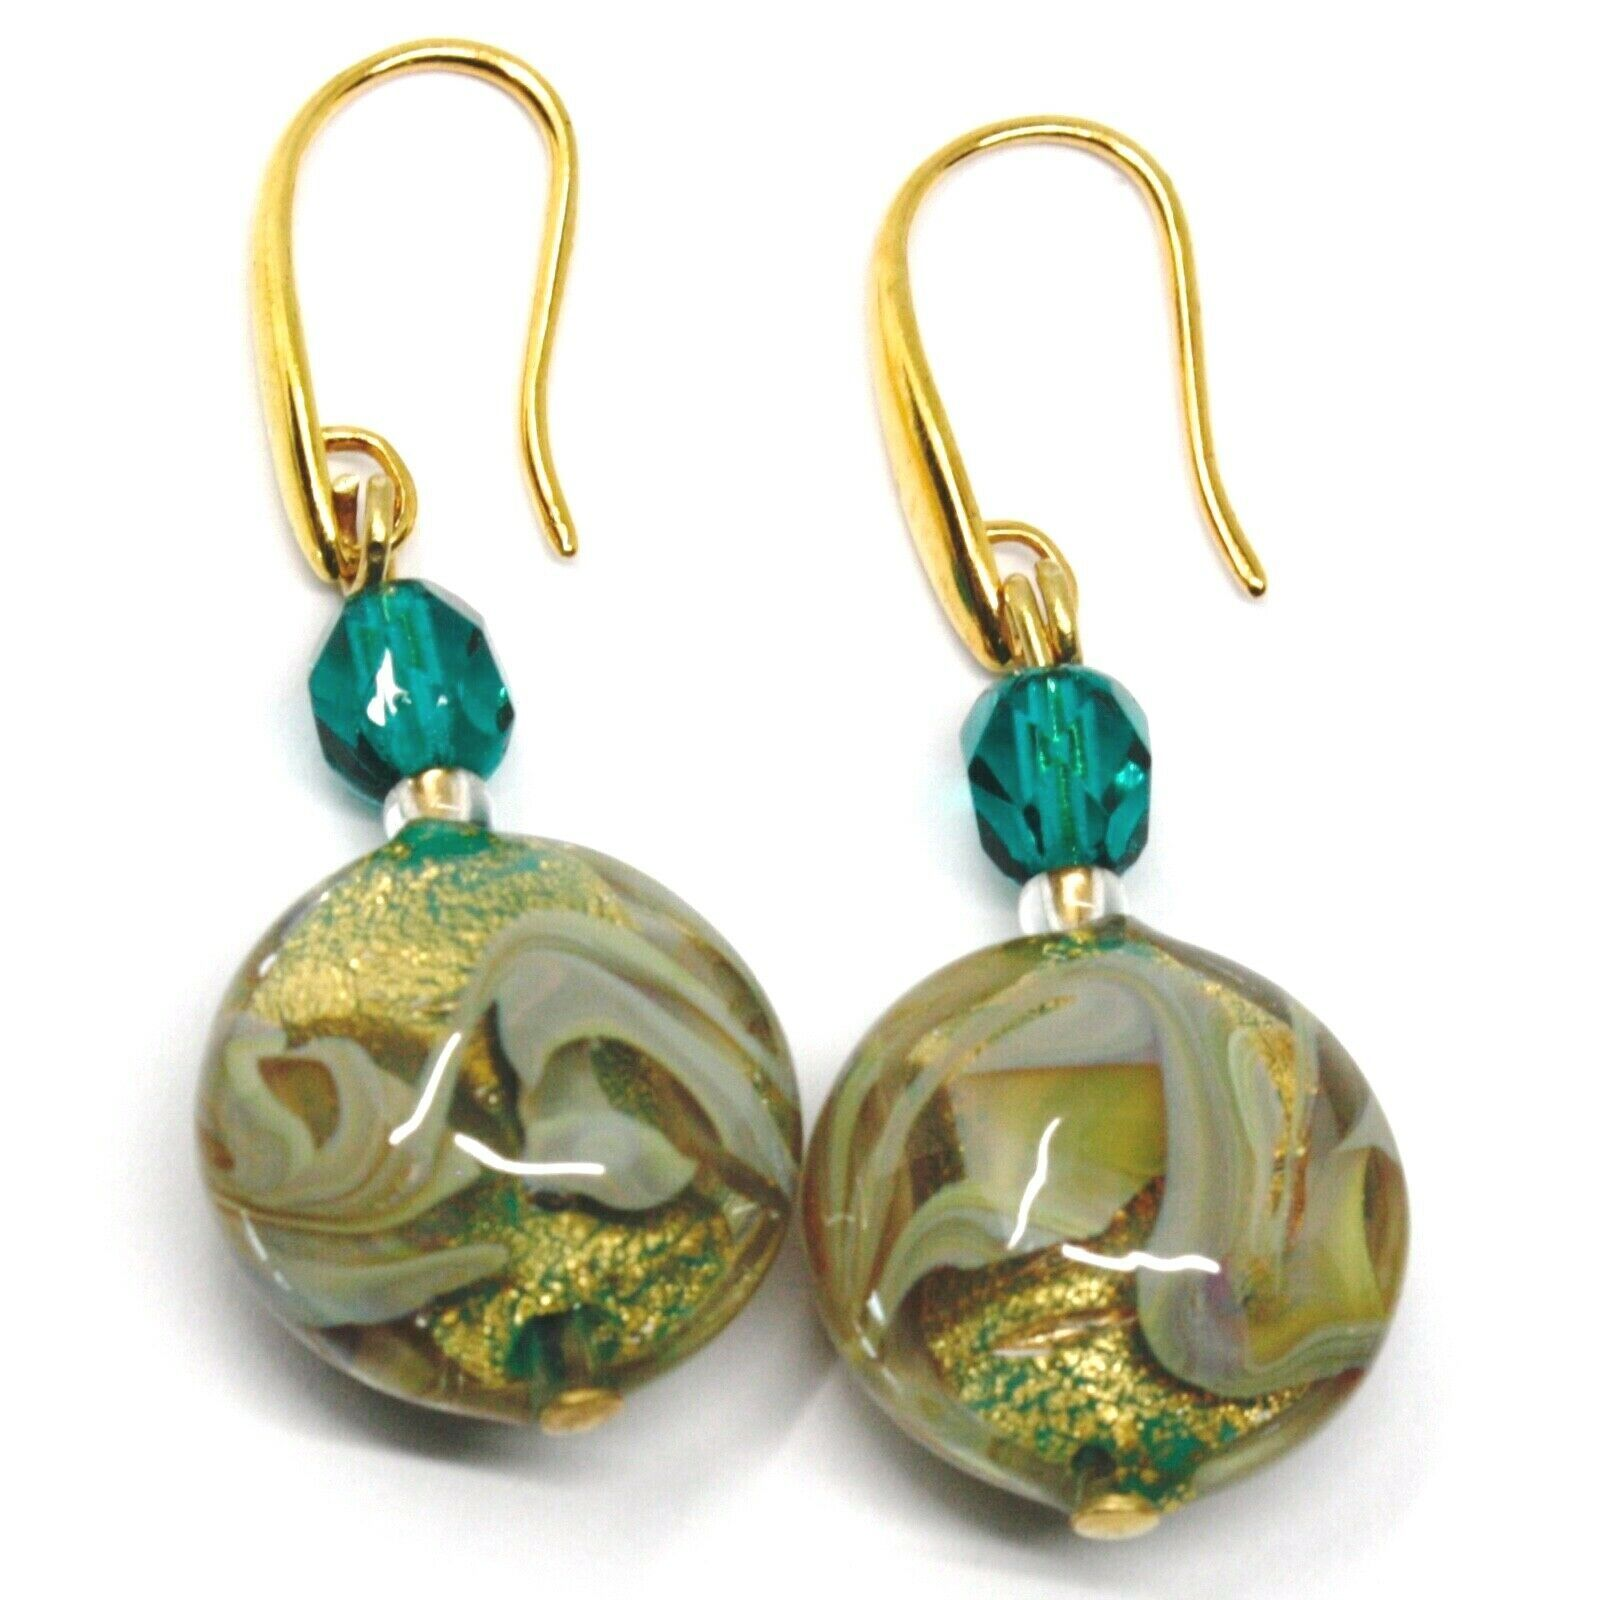 PENDANT HOOK EARRINGS GREEN YELLOW DISC MURANO GLASS GOLD LEAF MADE IN ITALY